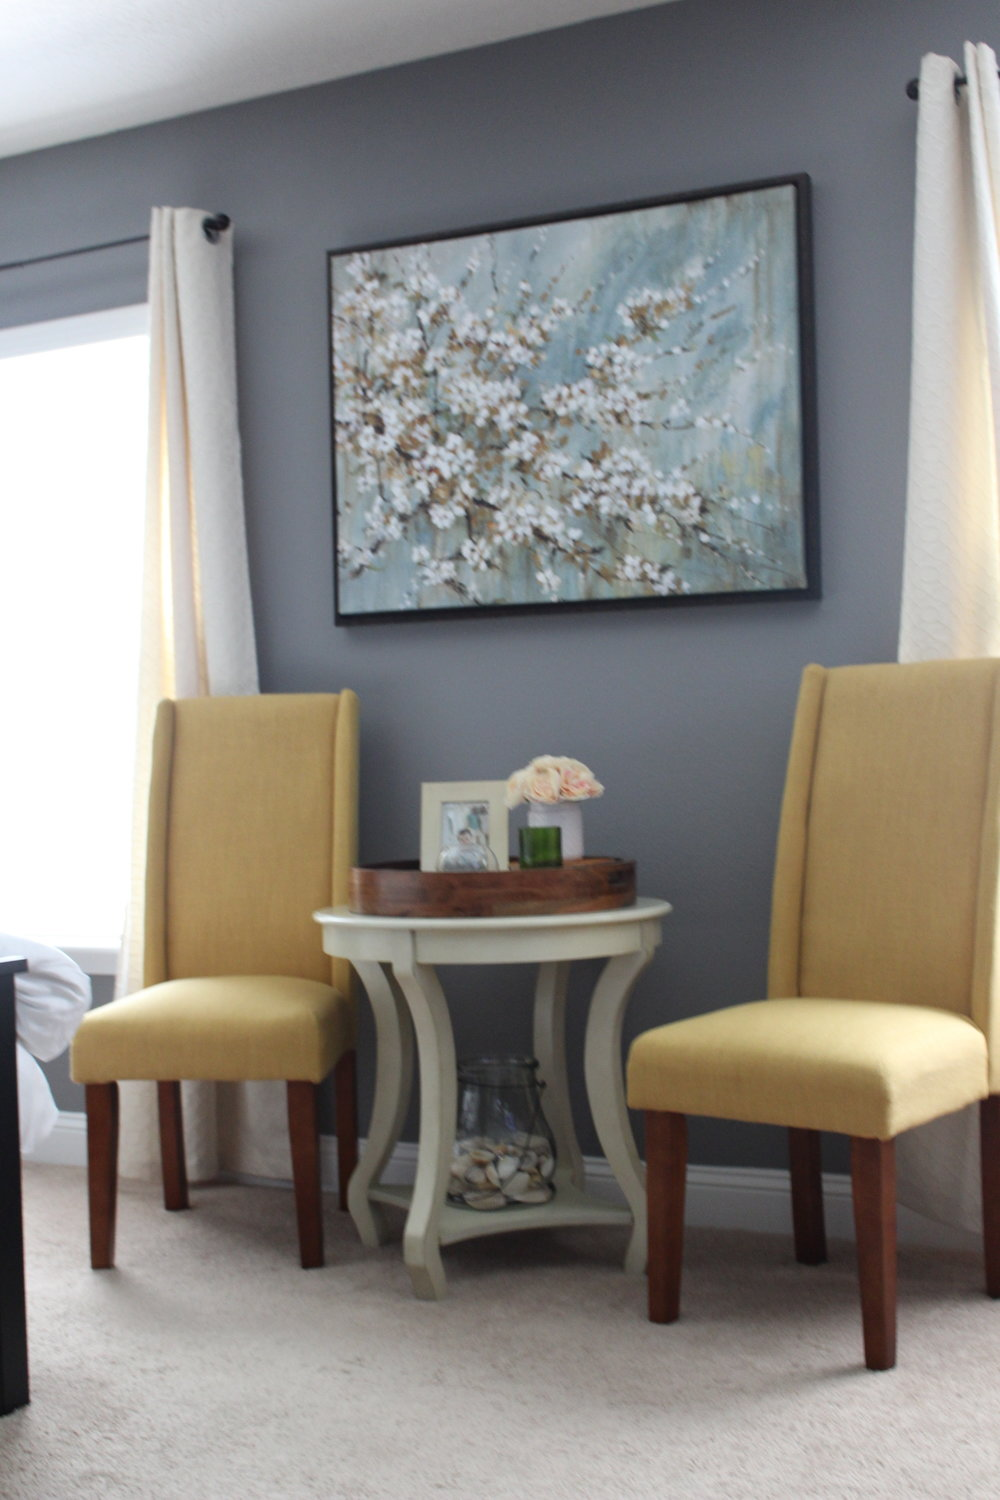 Cherry Blossom bedroom sitting area